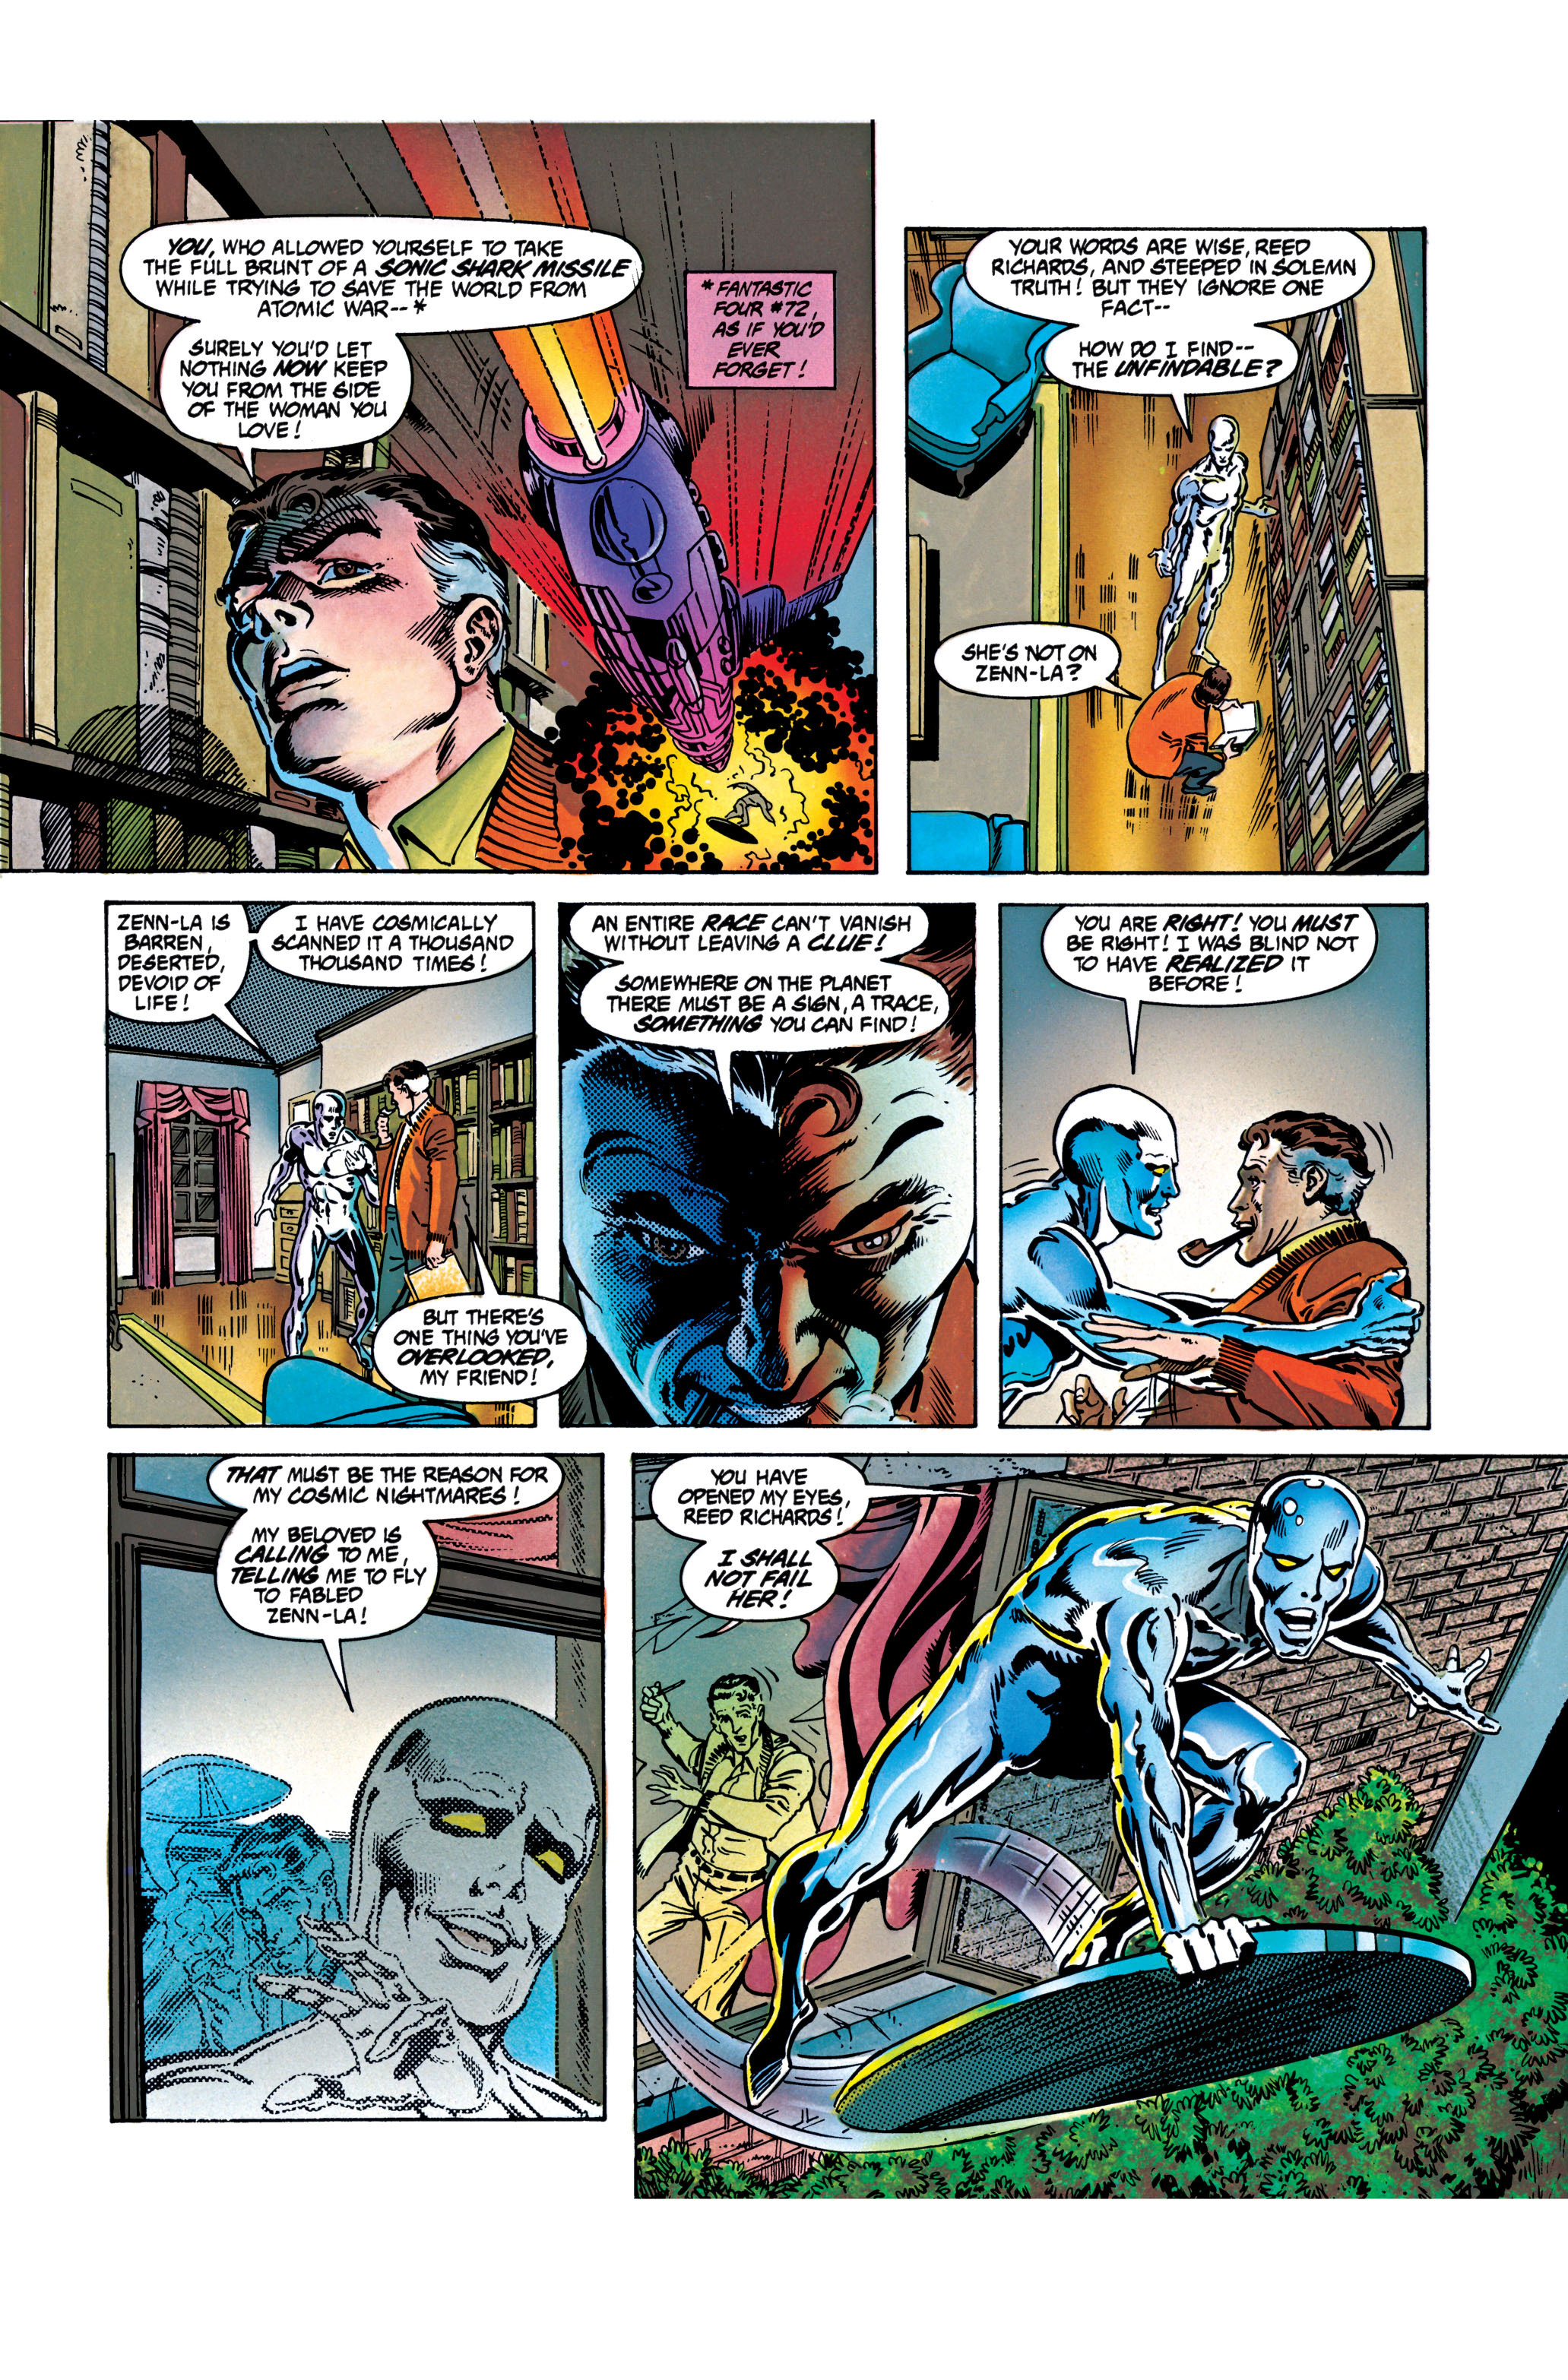 Read online Silver Surfer: Parable comic -  Issue # TPB - 73